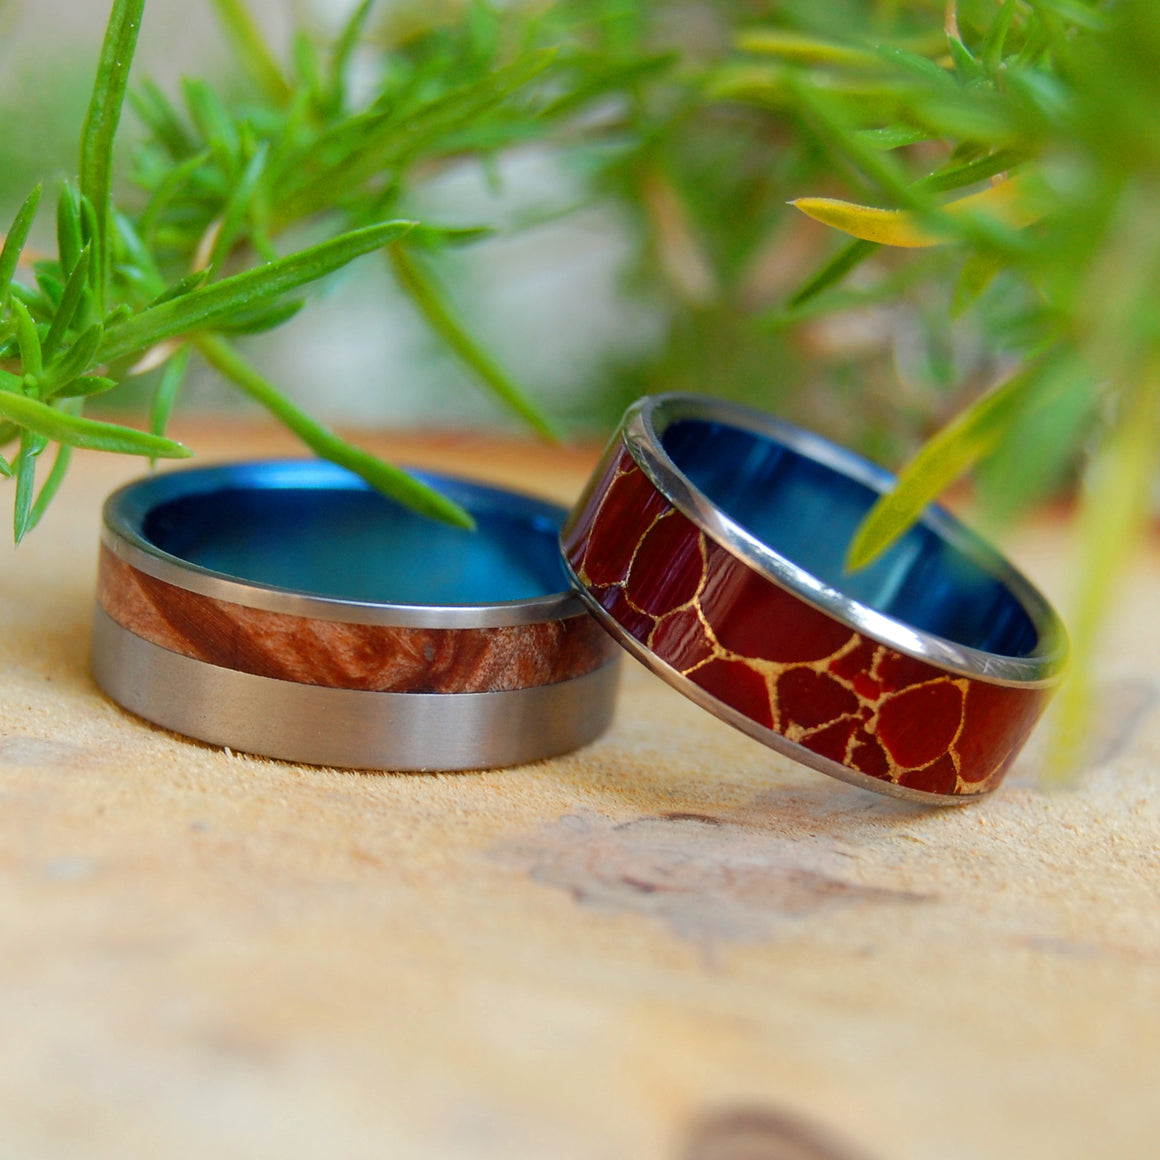 BLUE FAUN ENDURANCE | Red Jasper Stone, Wood & Titanium - Unique Wedding Rings - Women's Wedding Rings - Minter and Richter Designs